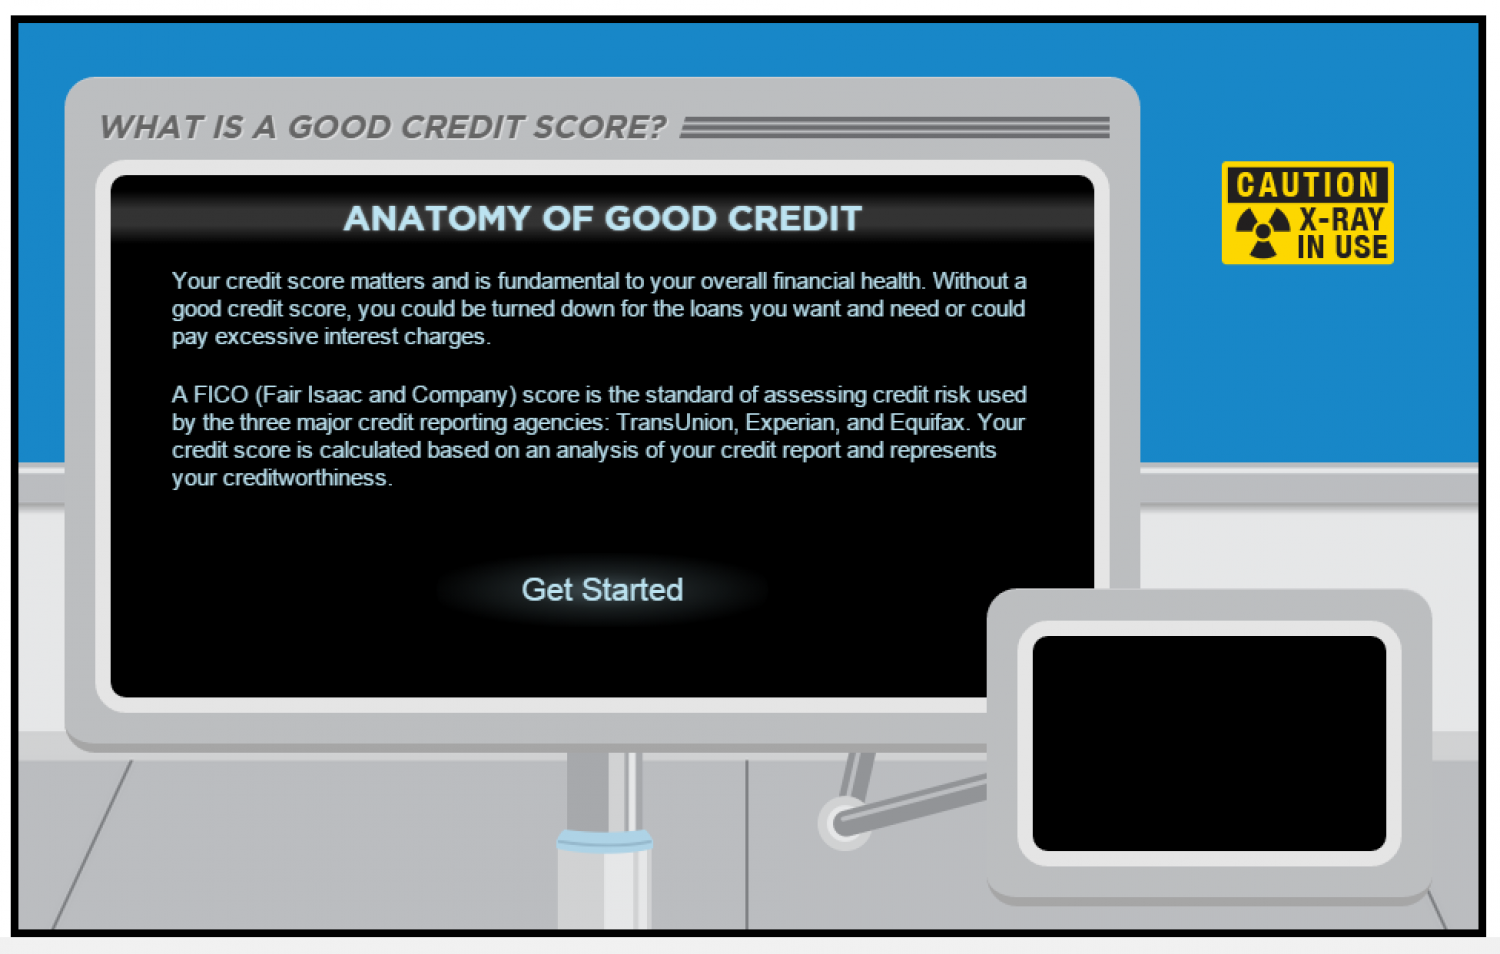 The Anatomy of Good Credit Infographic